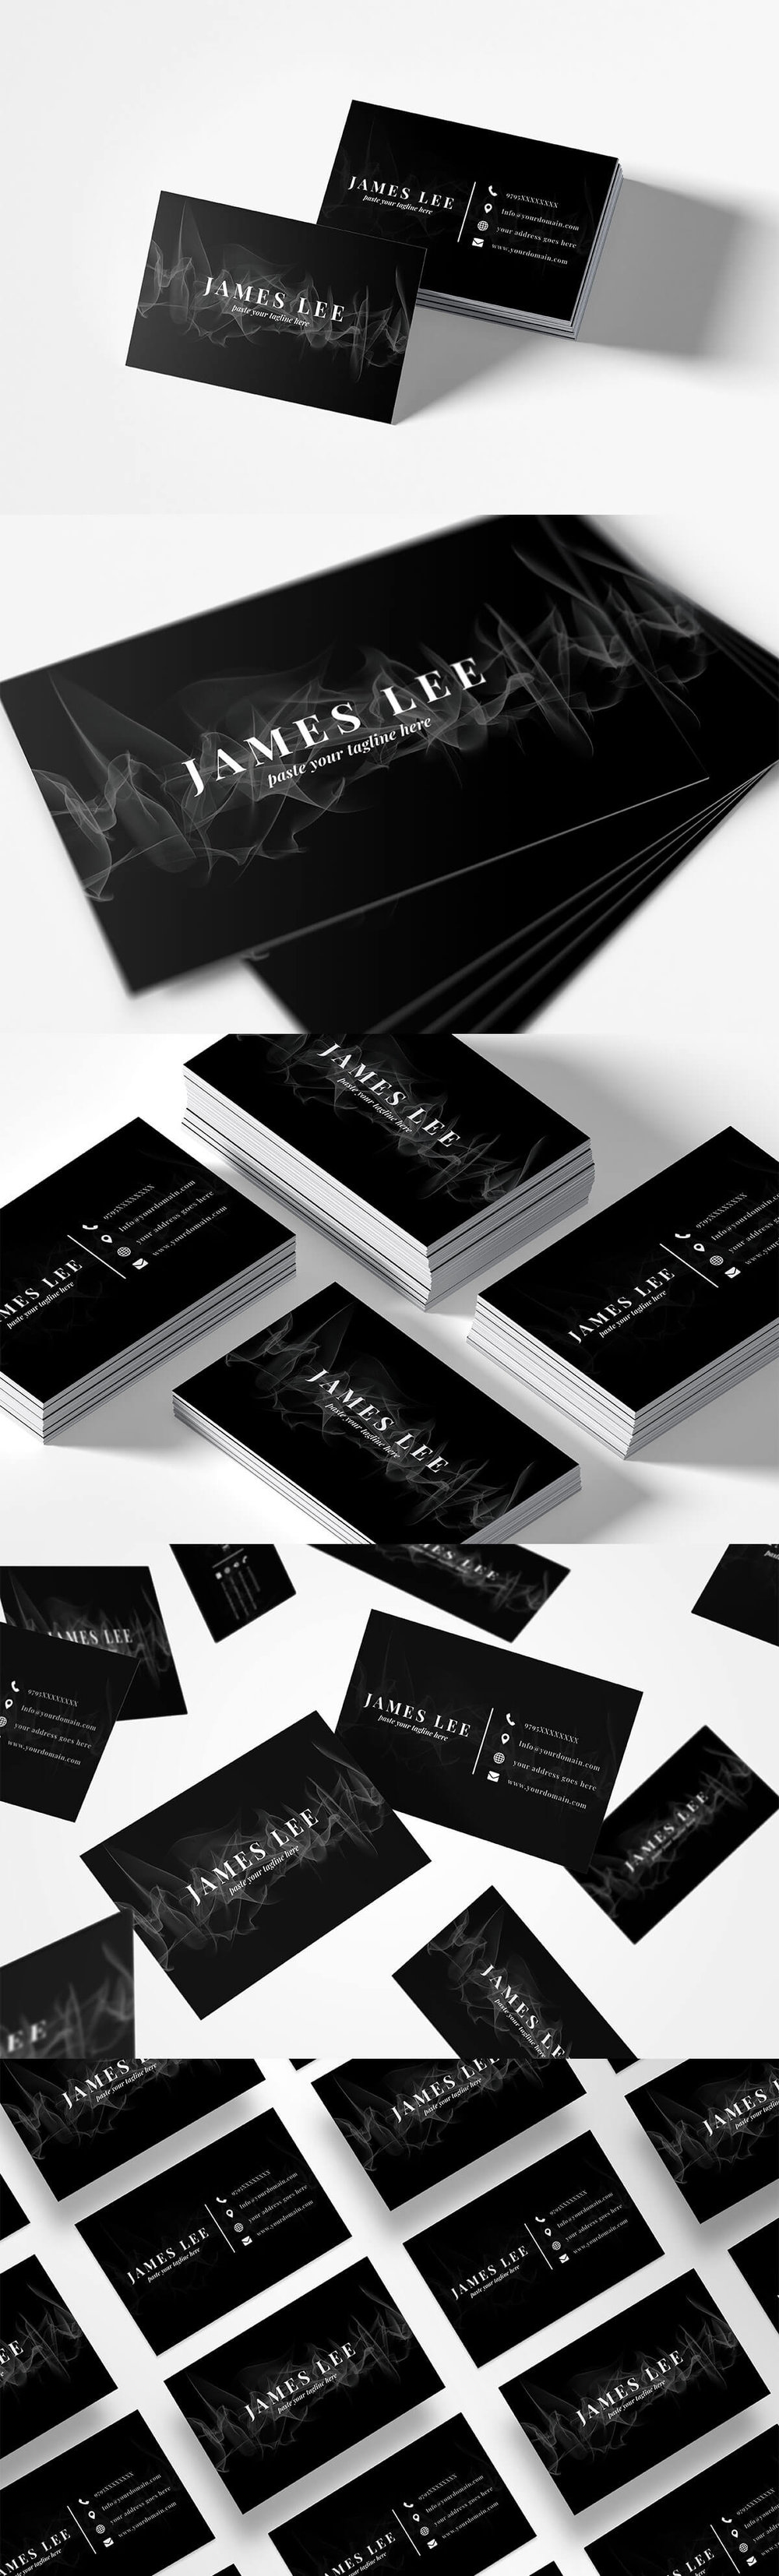 Elegant Free #Business #Card #Template is an elegant template. It comes with 2 PSD files with built-in smart object feature in CMYK color mode at 300 DPI resolution.